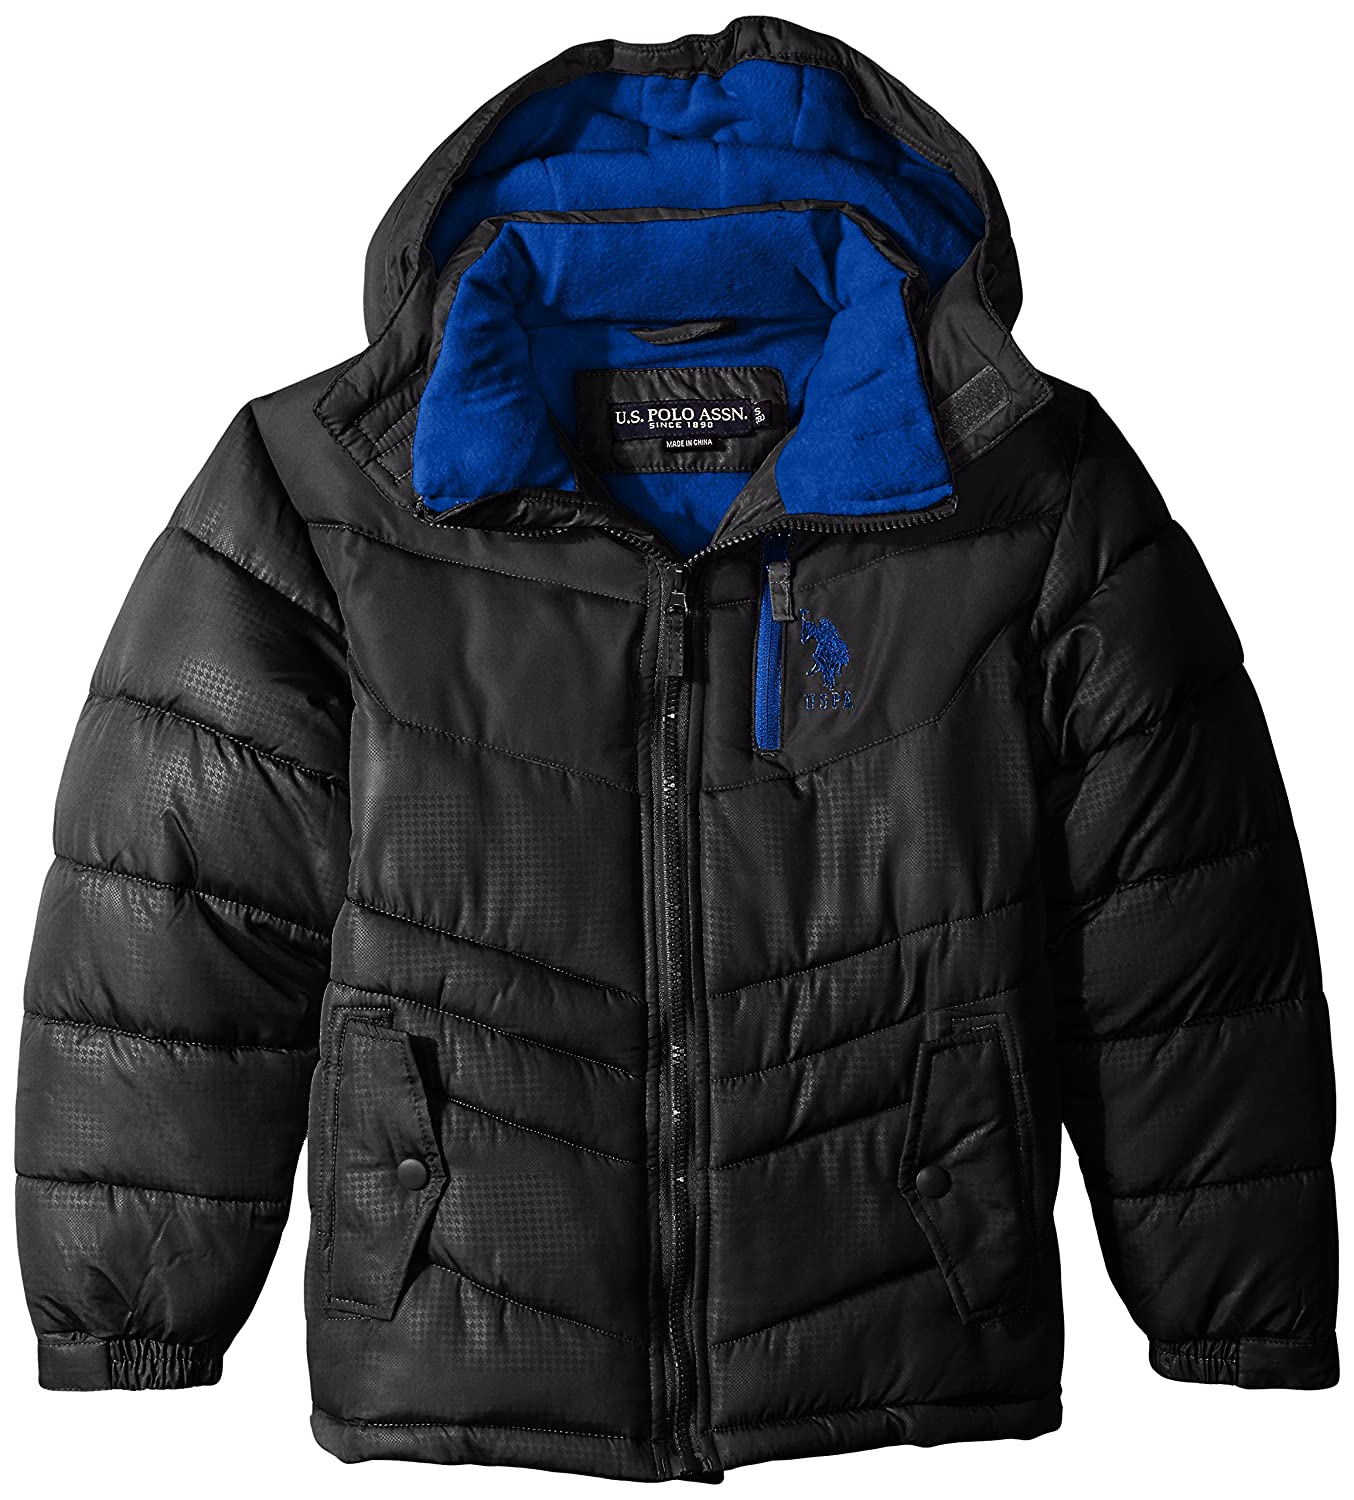 U.S. Polo Assn. Boys' Puffer Jacket with Hood Black 2T U.S. Polo Assn Boys 2-7